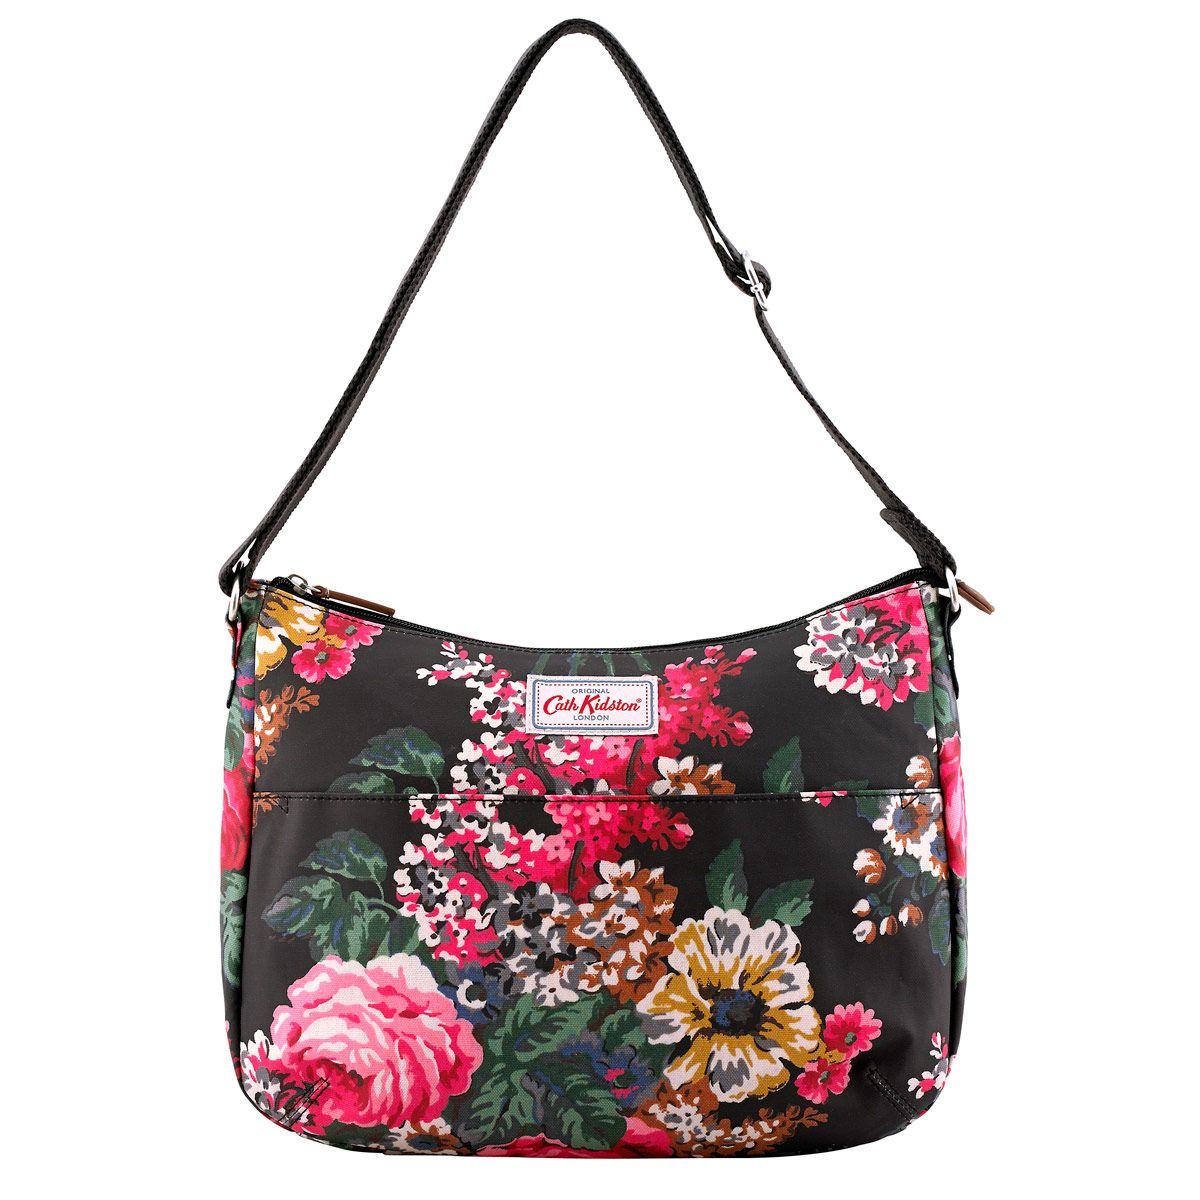 Bloomsbury Bouquet All Day Bag | Cath Kidston | | Cathy | Pinterest